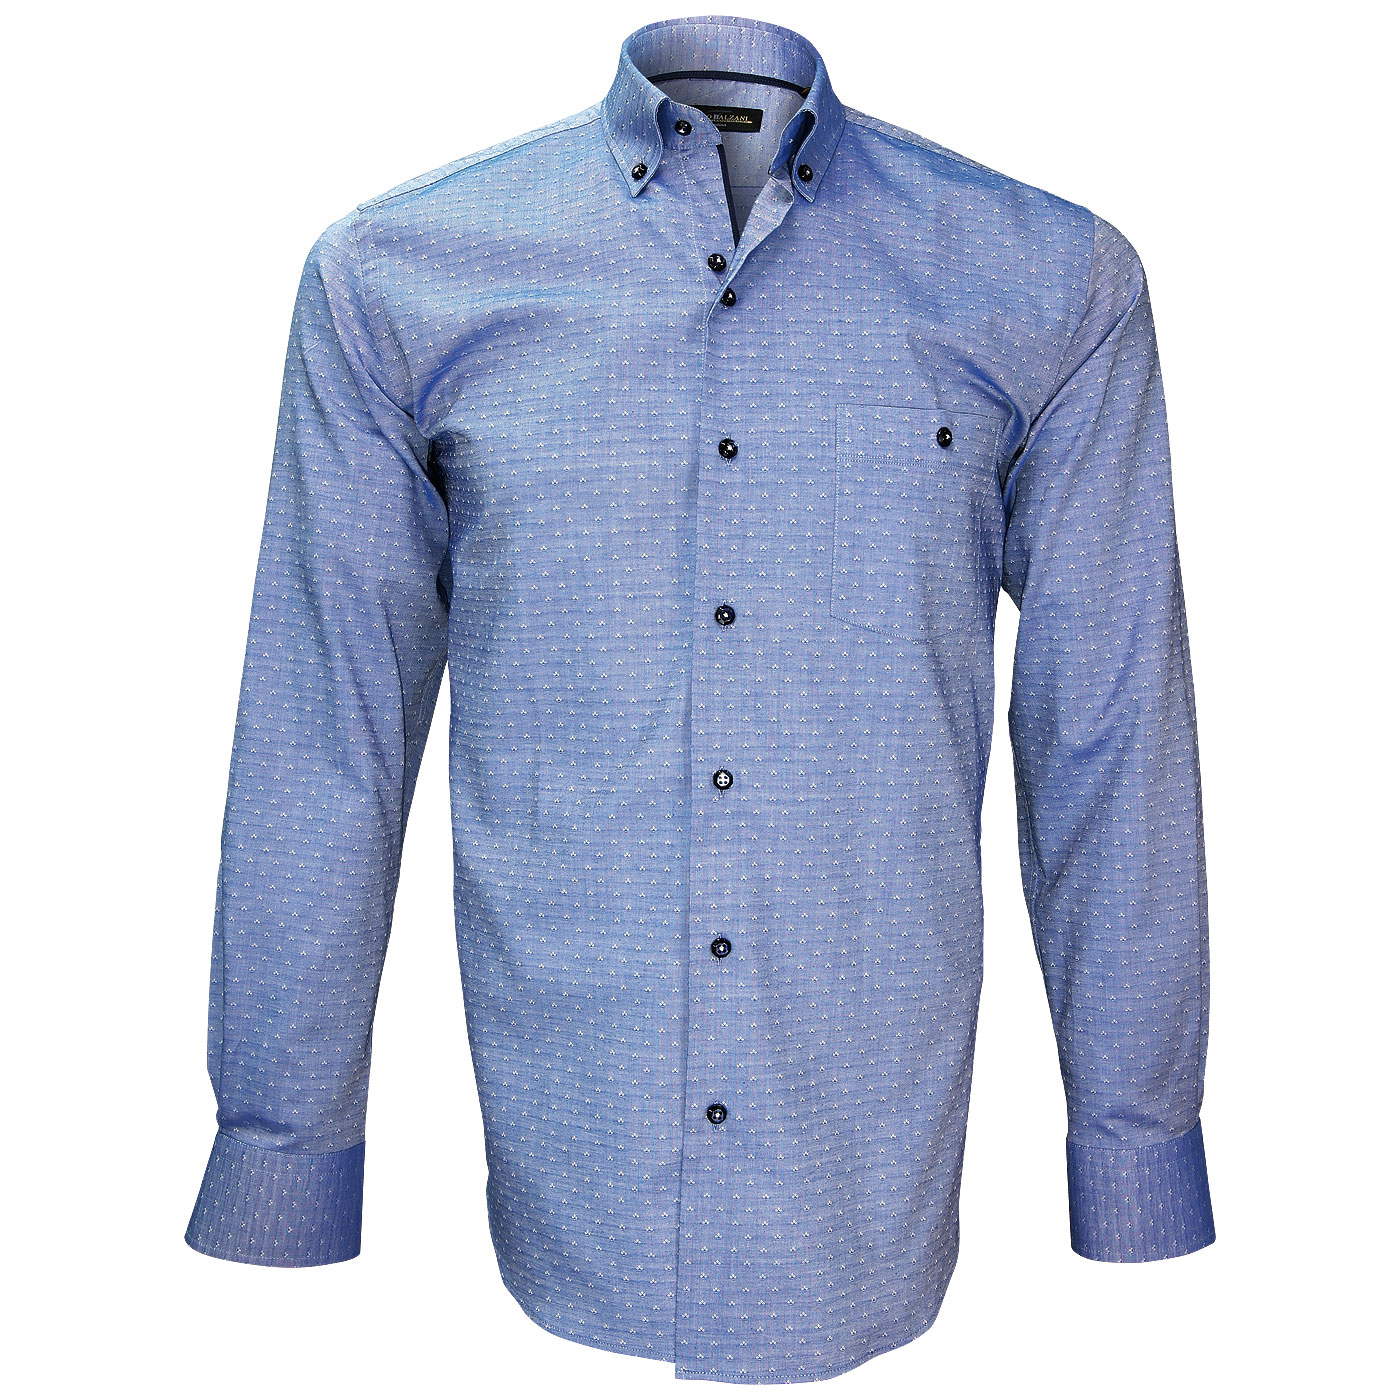 Camisa Oxford, la Camisa Casual Estilo British